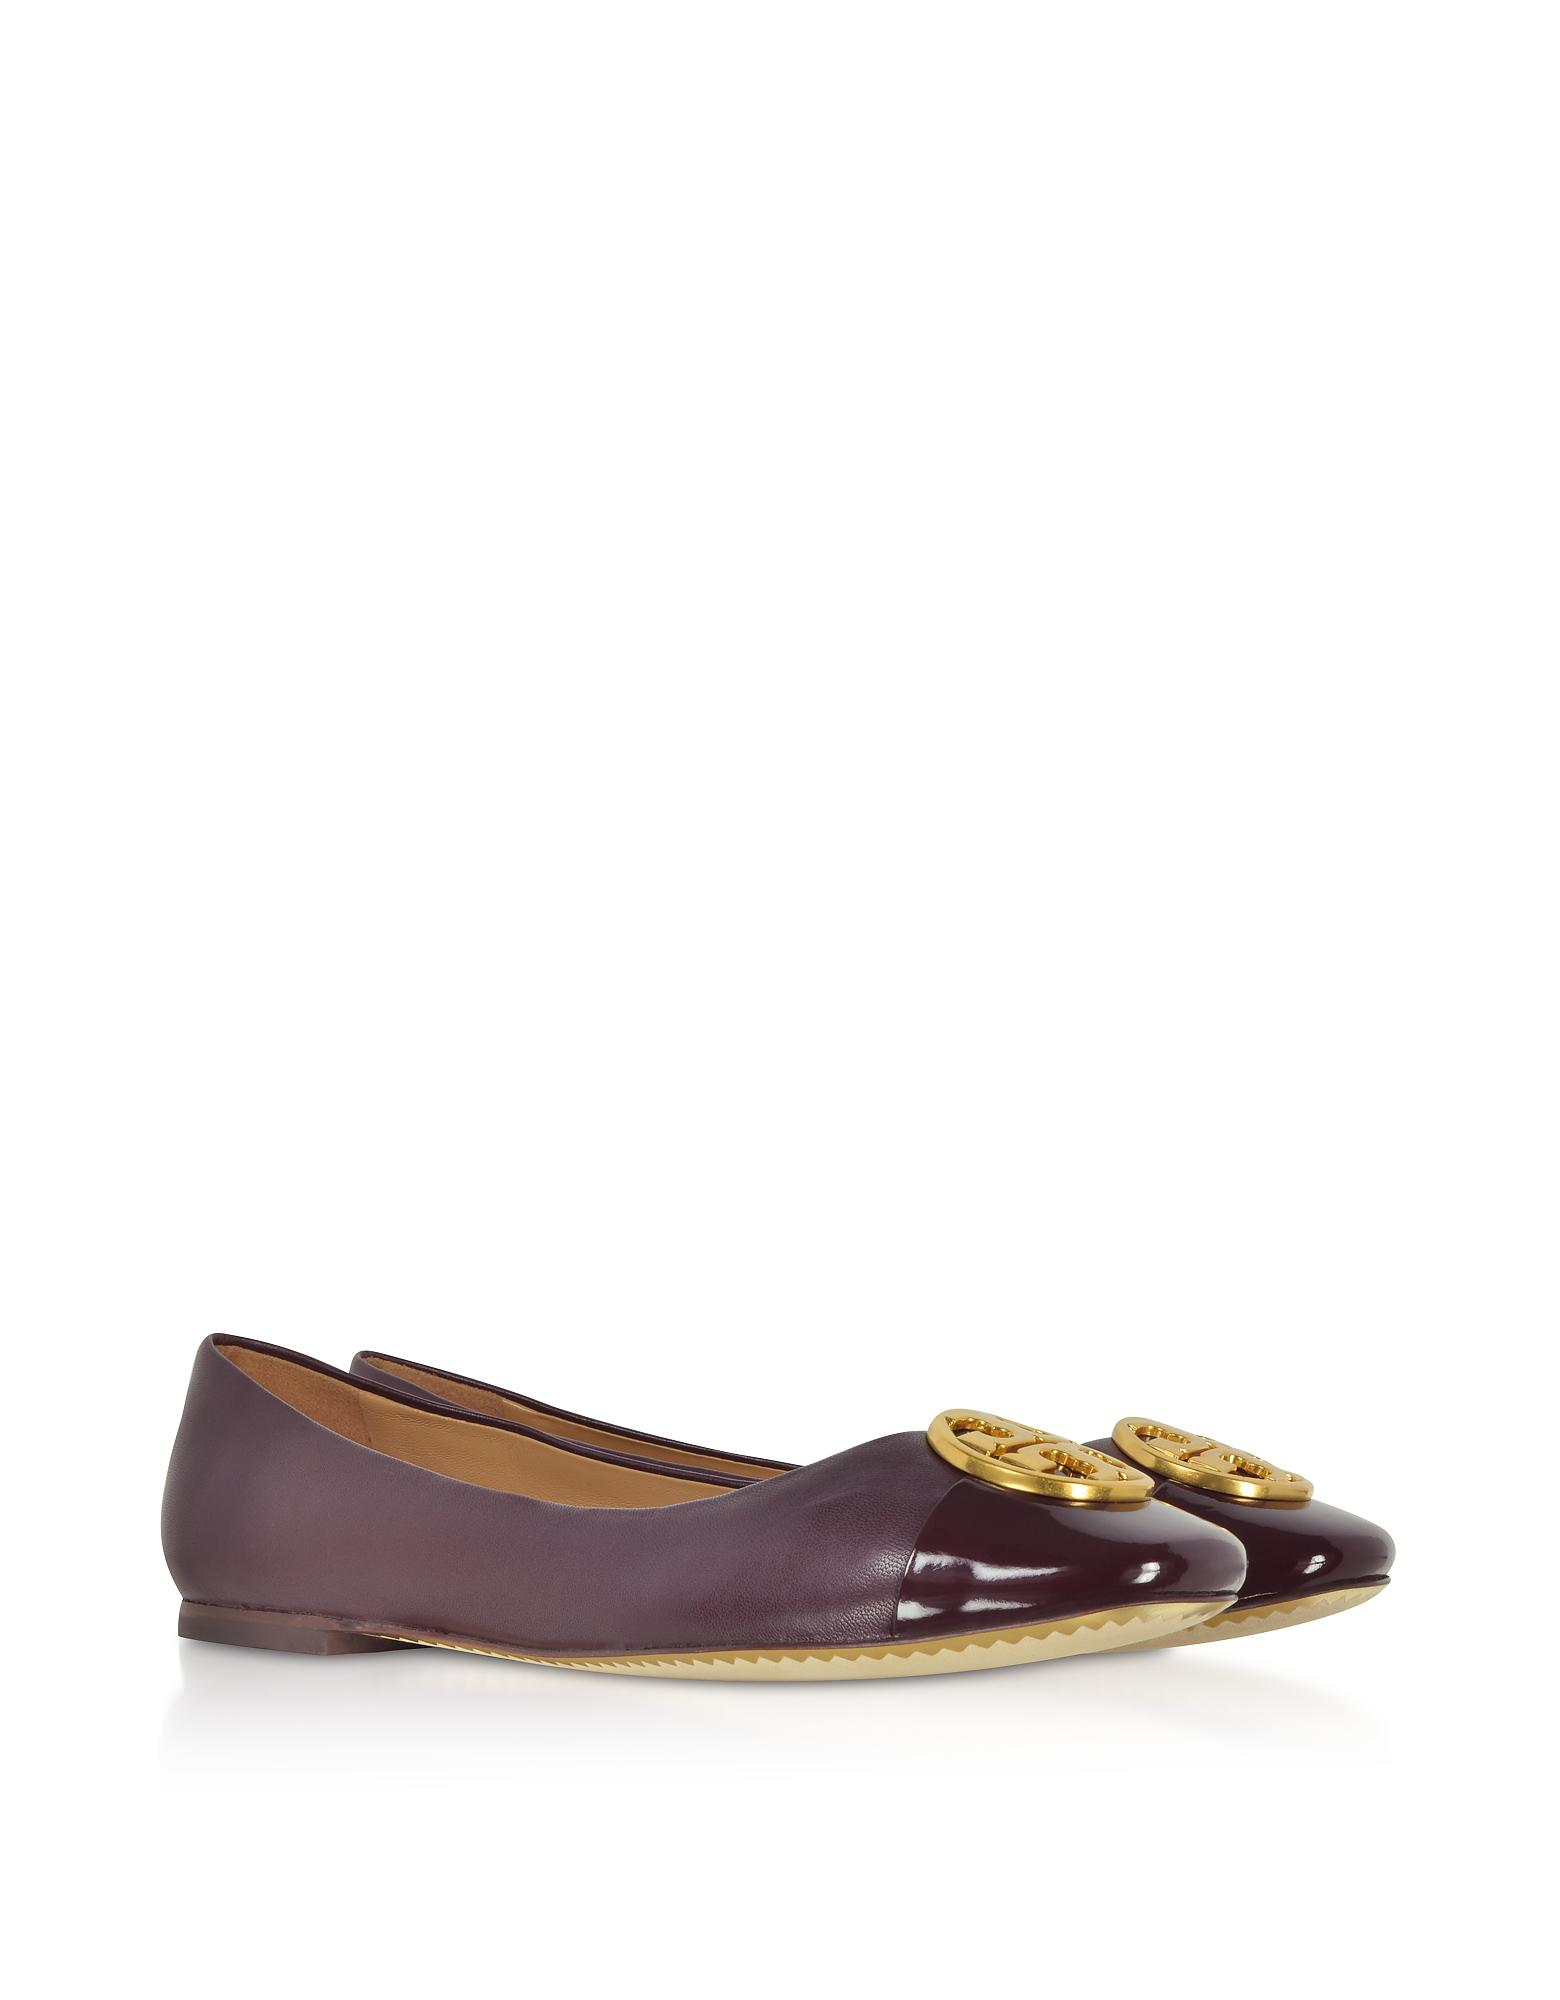 a89776bf6 Lyst - Tory Burch Burgundy Nappa   Patent Leather Chelsea Cap-toe ...